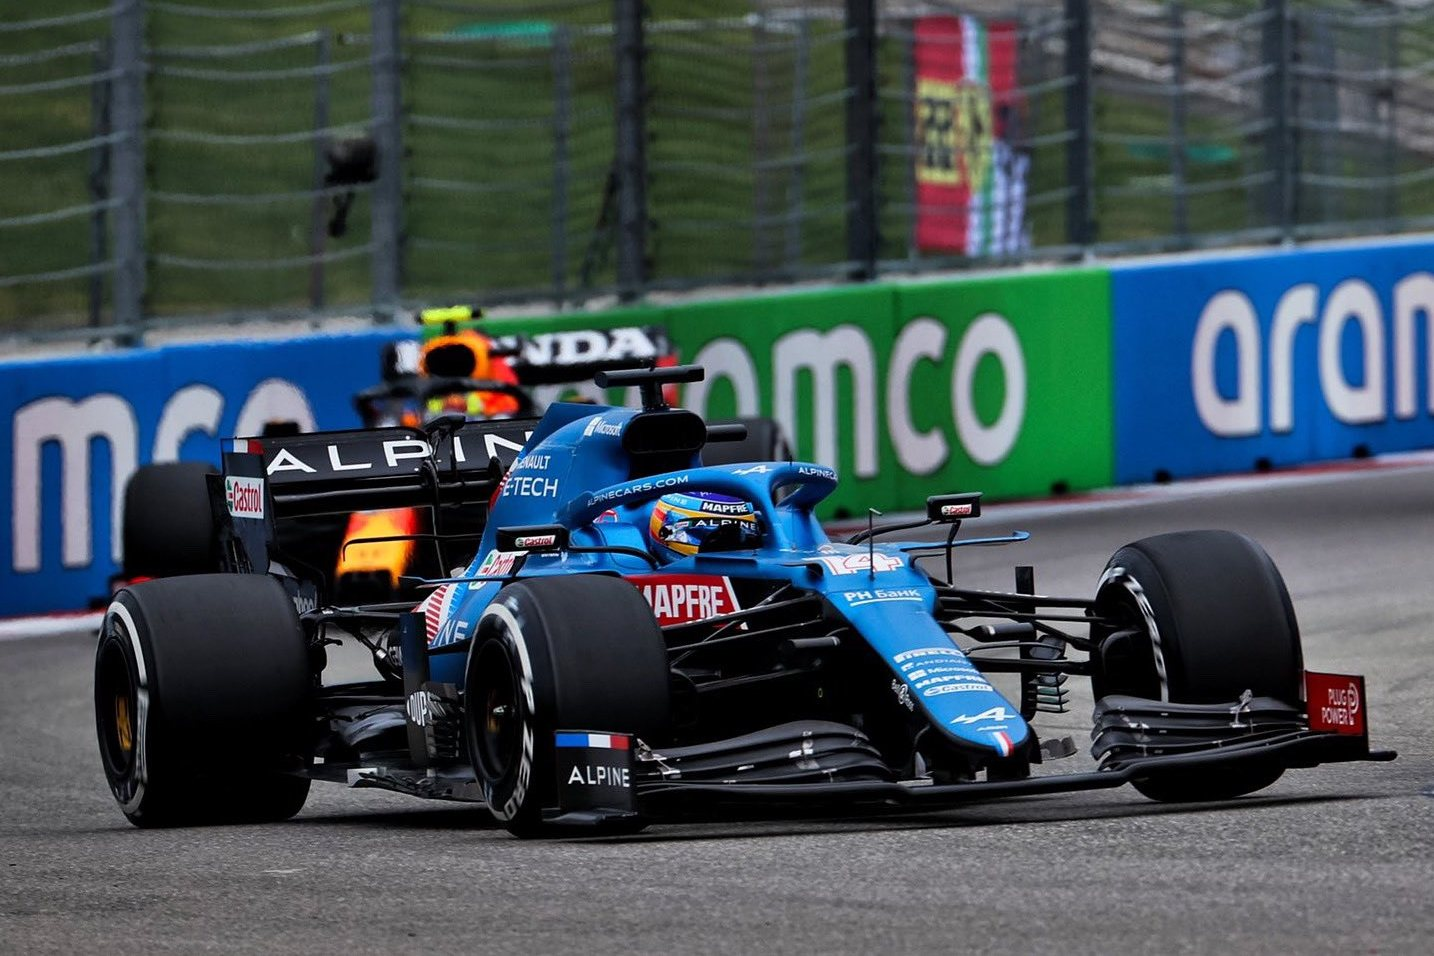 Alonso says Alpine 'execution' deserved Russian GP podium